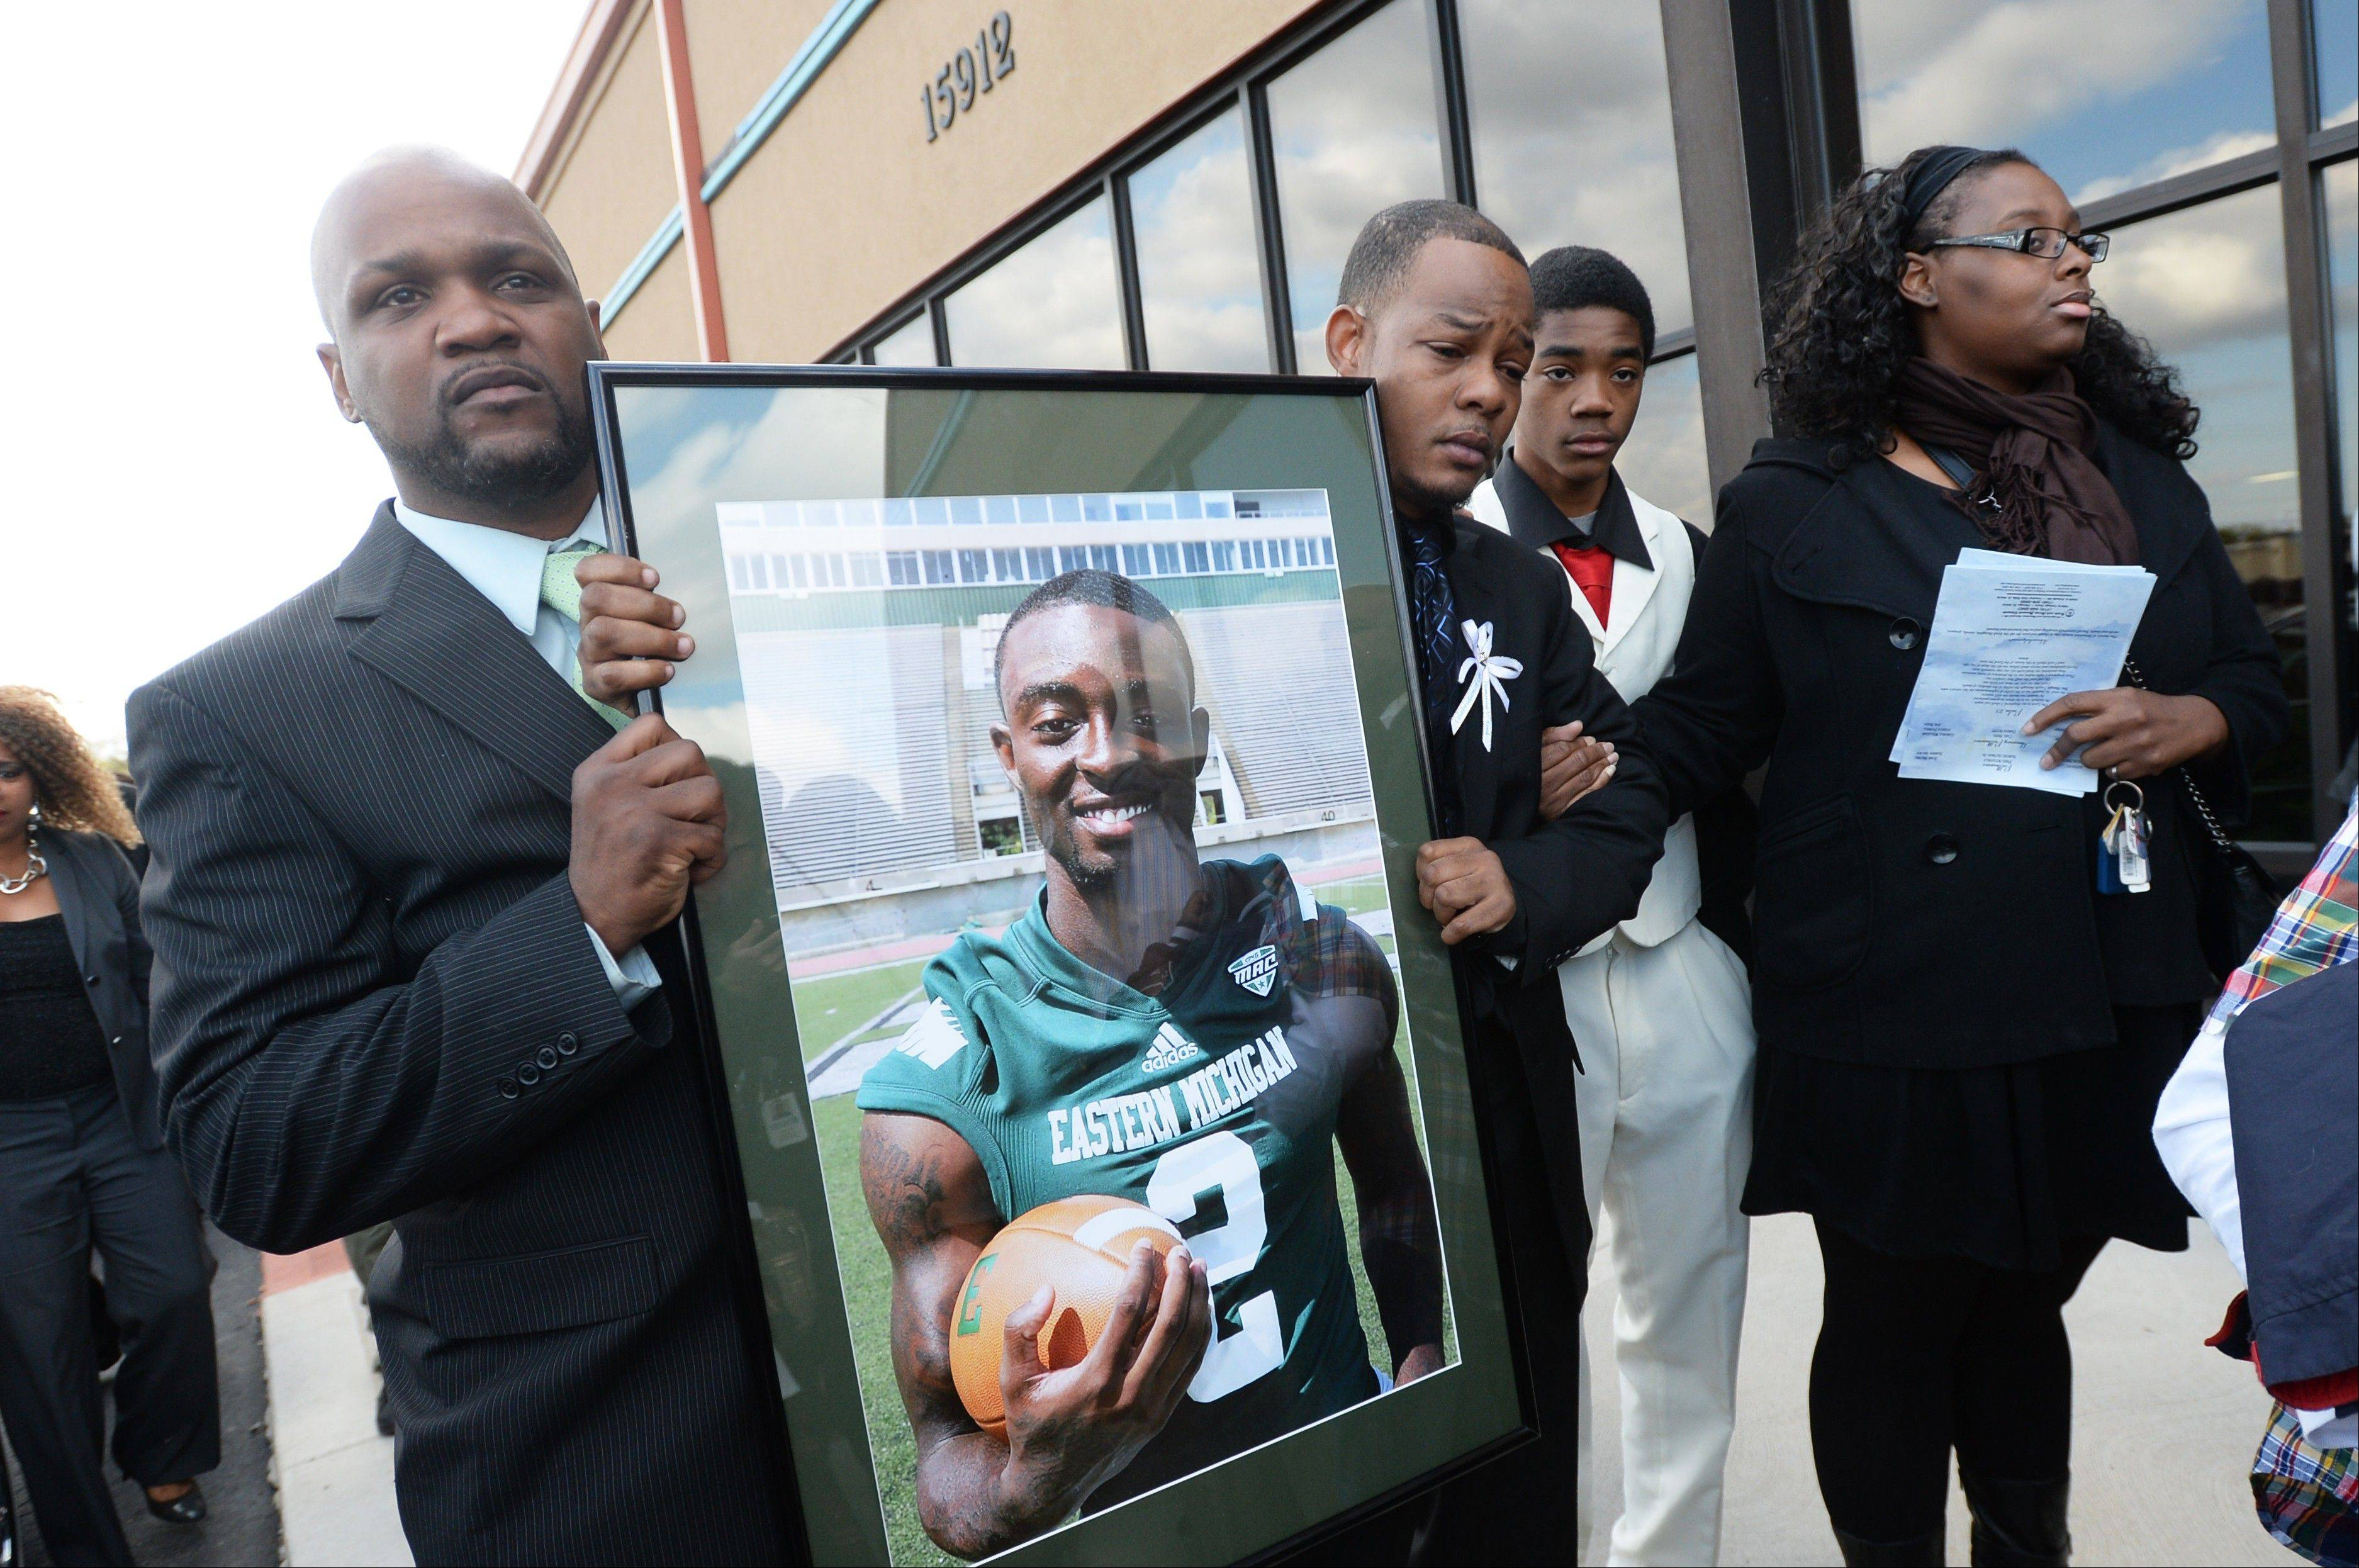 Family members Edward Harris, left, and Damien Brown, carry a framed photo of Demarius Reed, in his Eastern Michigan football jersey, as they leave Reed's funeral at Holy Temple Cathedral in Harvey, Ill., on Saturday, Oct. 26, 2013. Reed was repeatedly shot Oct. 18 in what police say may have been a robbery. (AP Photo/AnnArbor.com, Melanie Maxwell) LOCAL TV OUT; LOCAL INTERNET OUT; ONLN OUT; IONLN OUT